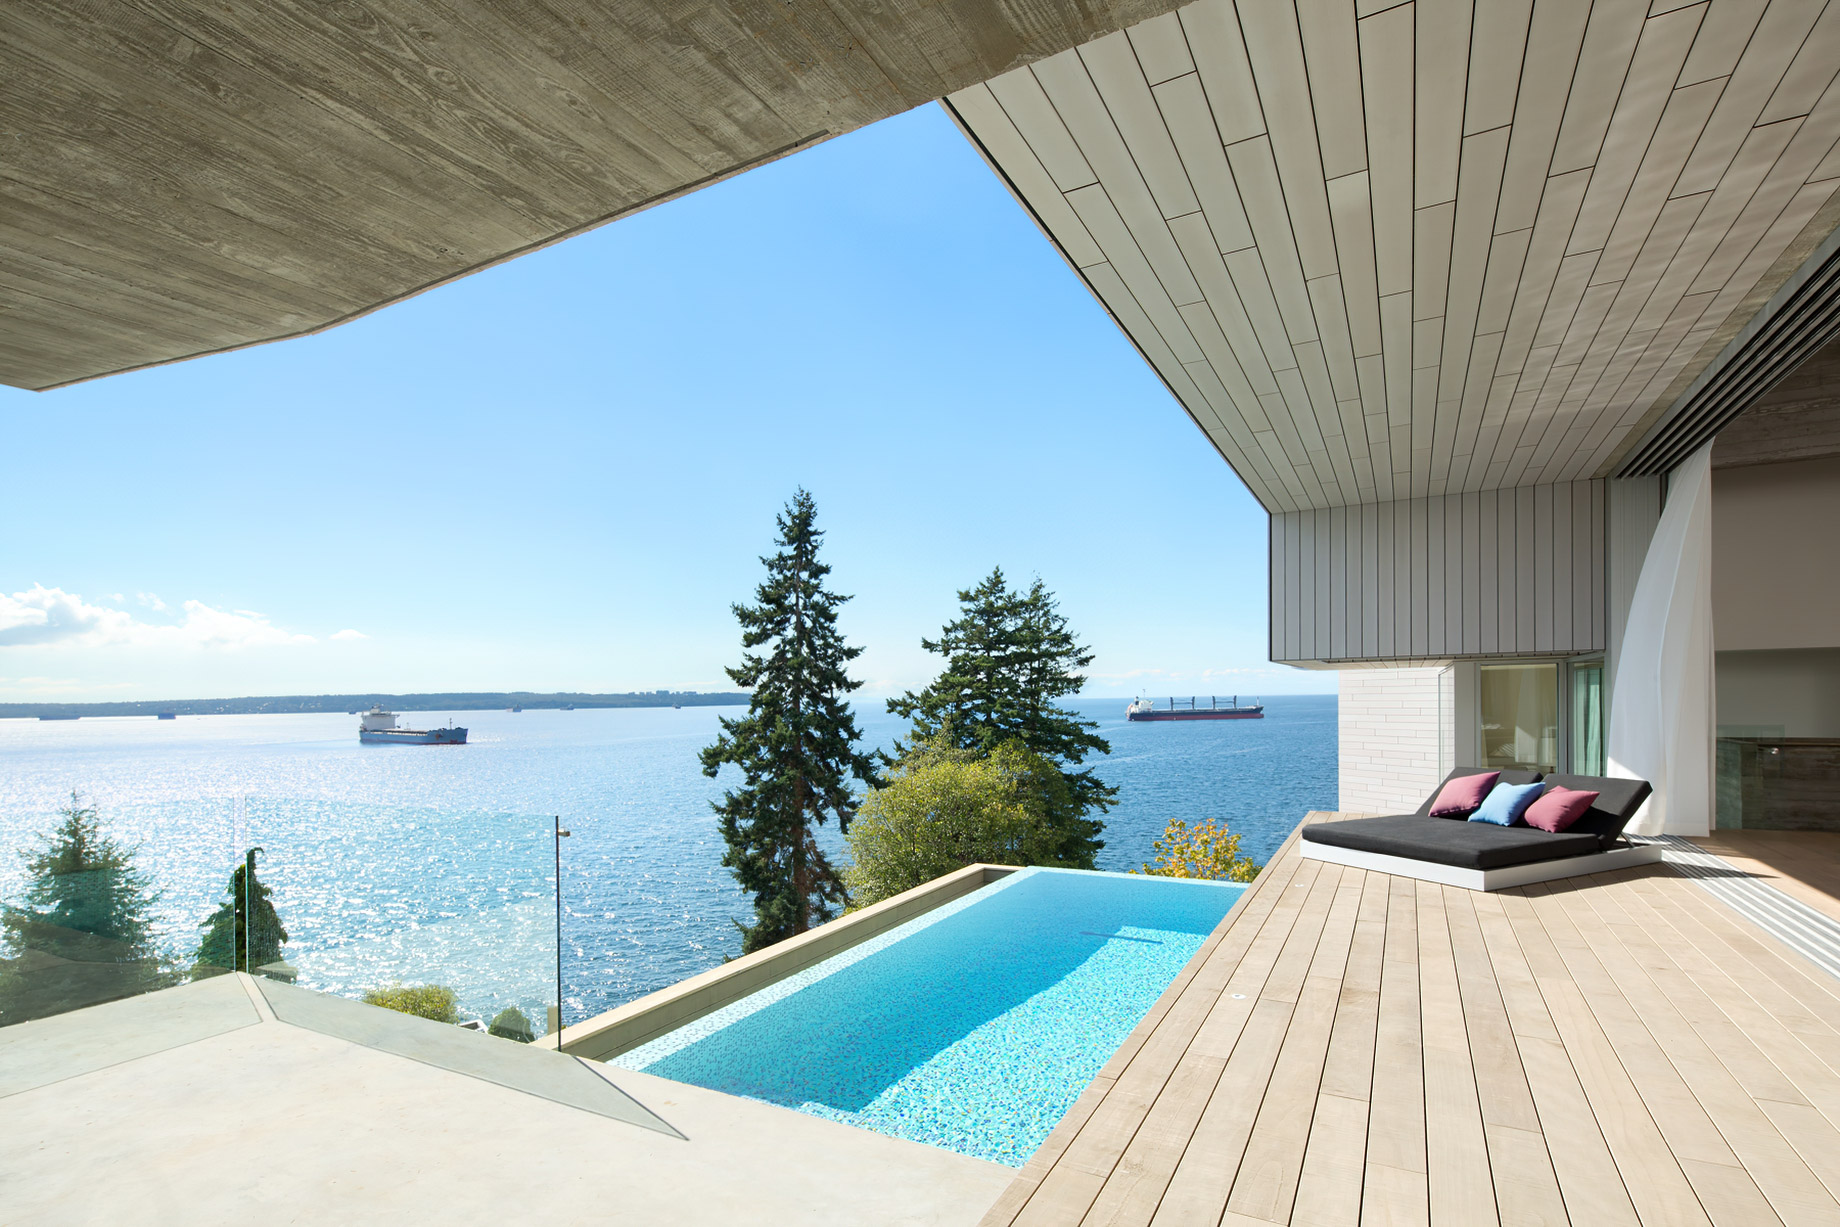 Sunset House Modern Organic Minimalism – West Vancouver, BC, Canada